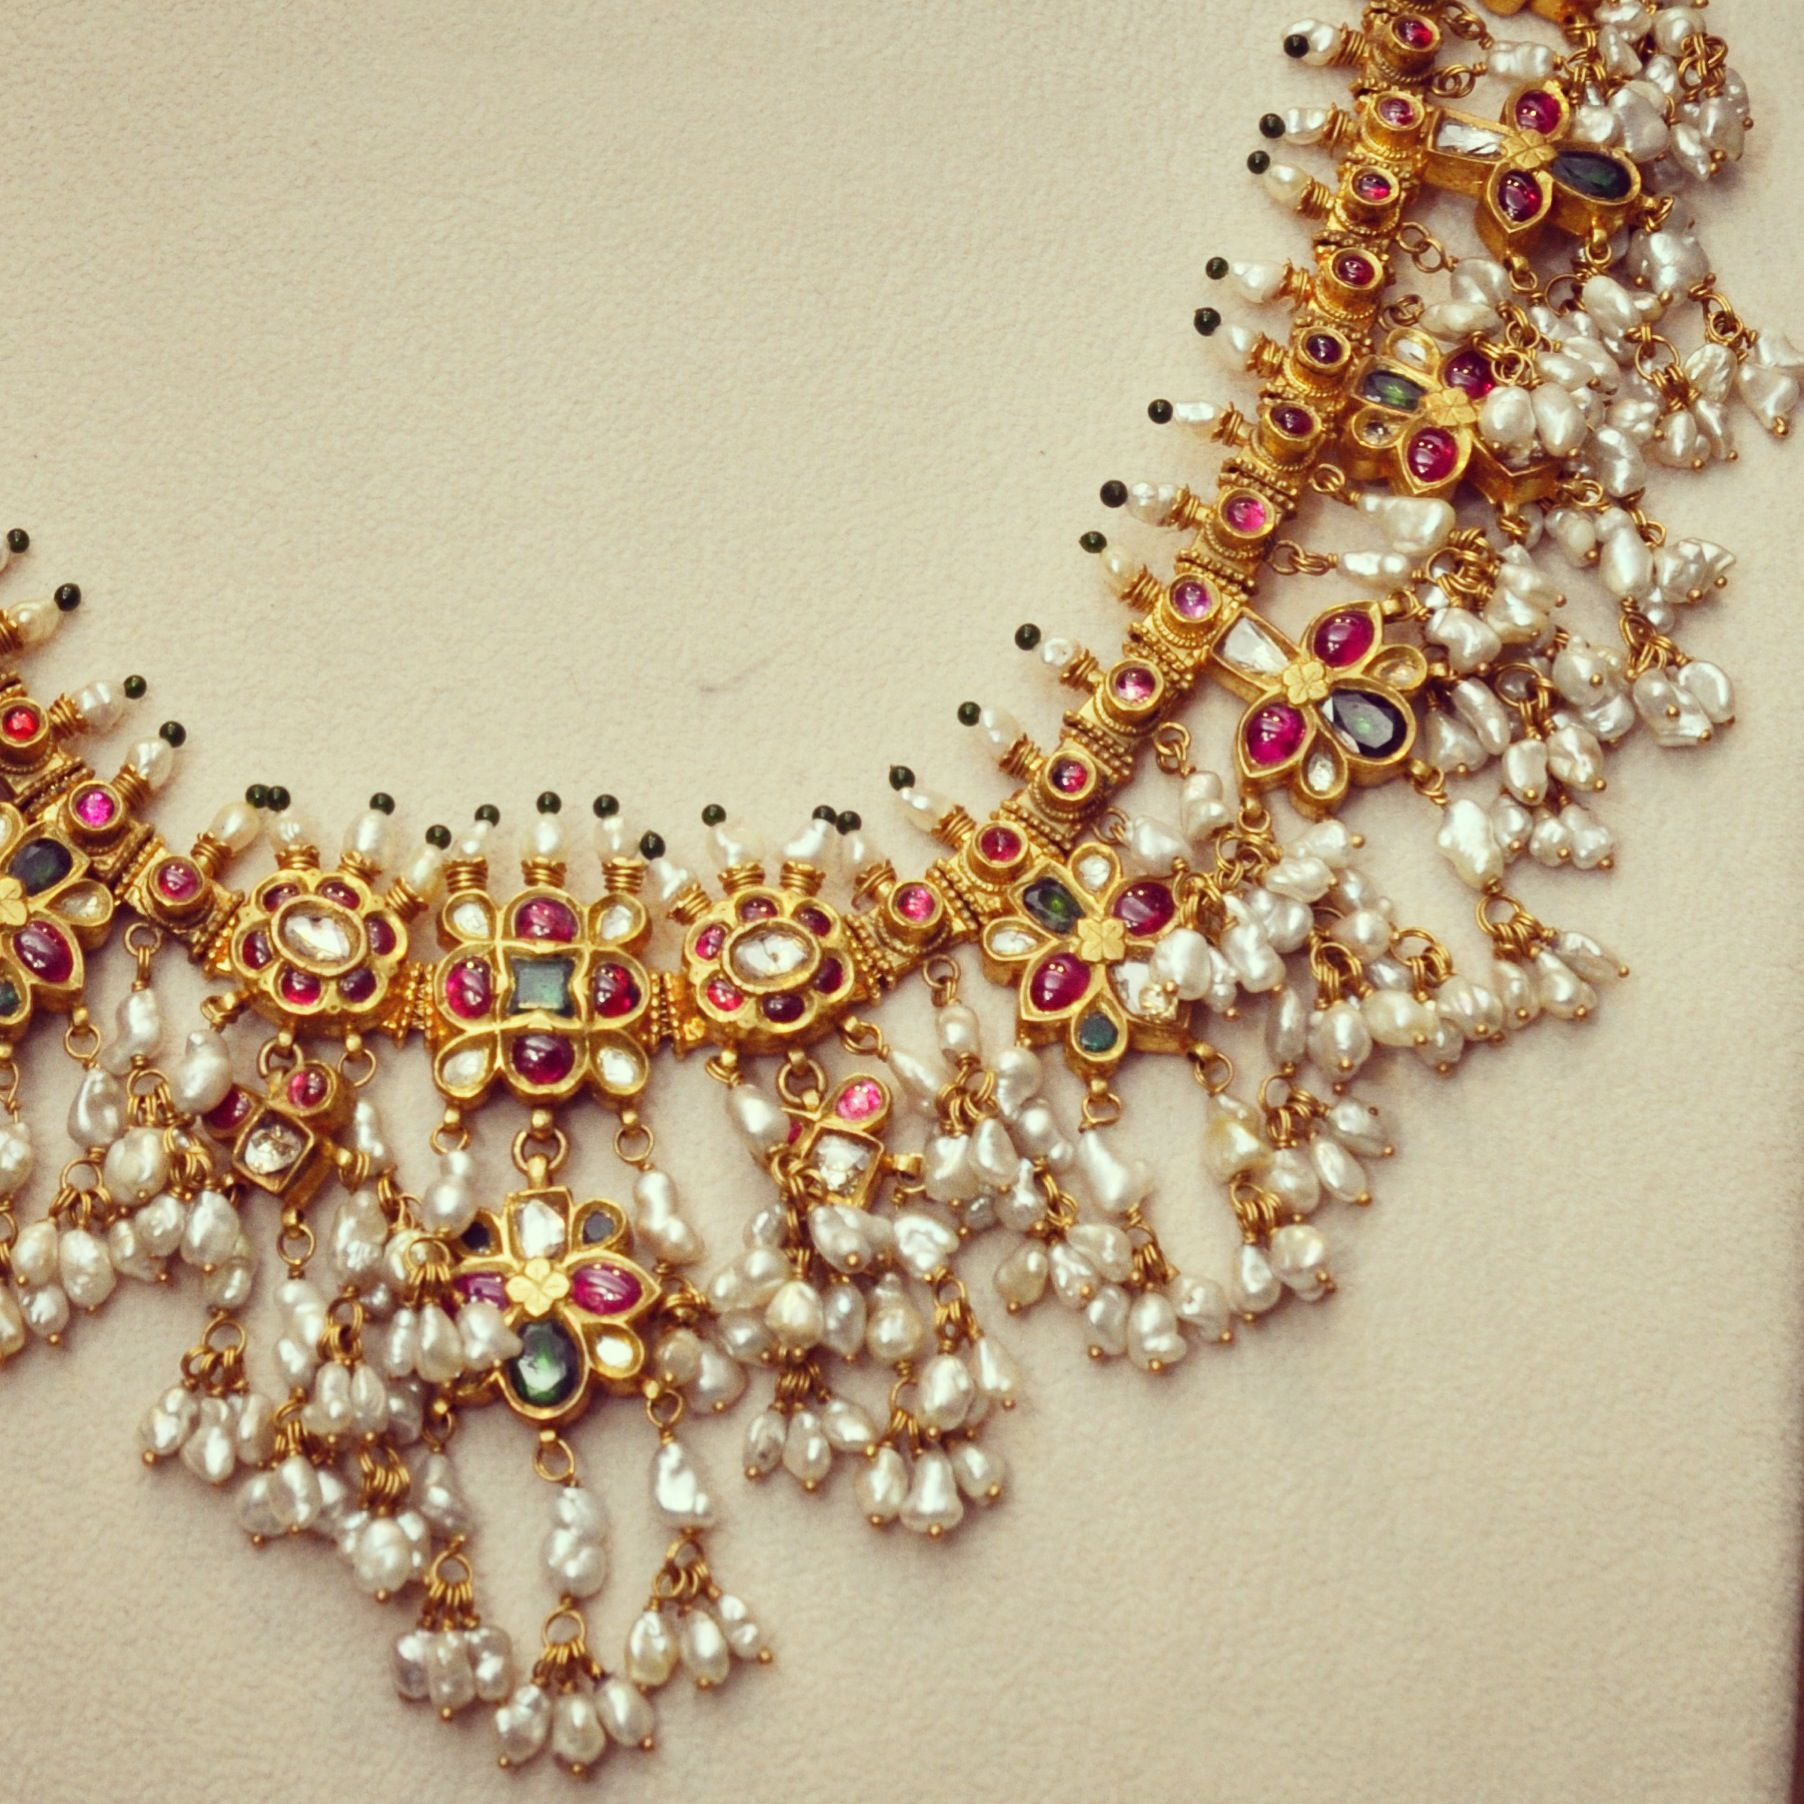 Jewelry & Watches Kundan Polki Meena Padmavat Amrapali Chokar Neckalec Bridal Party Jewelry Elegant And Sturdy Package